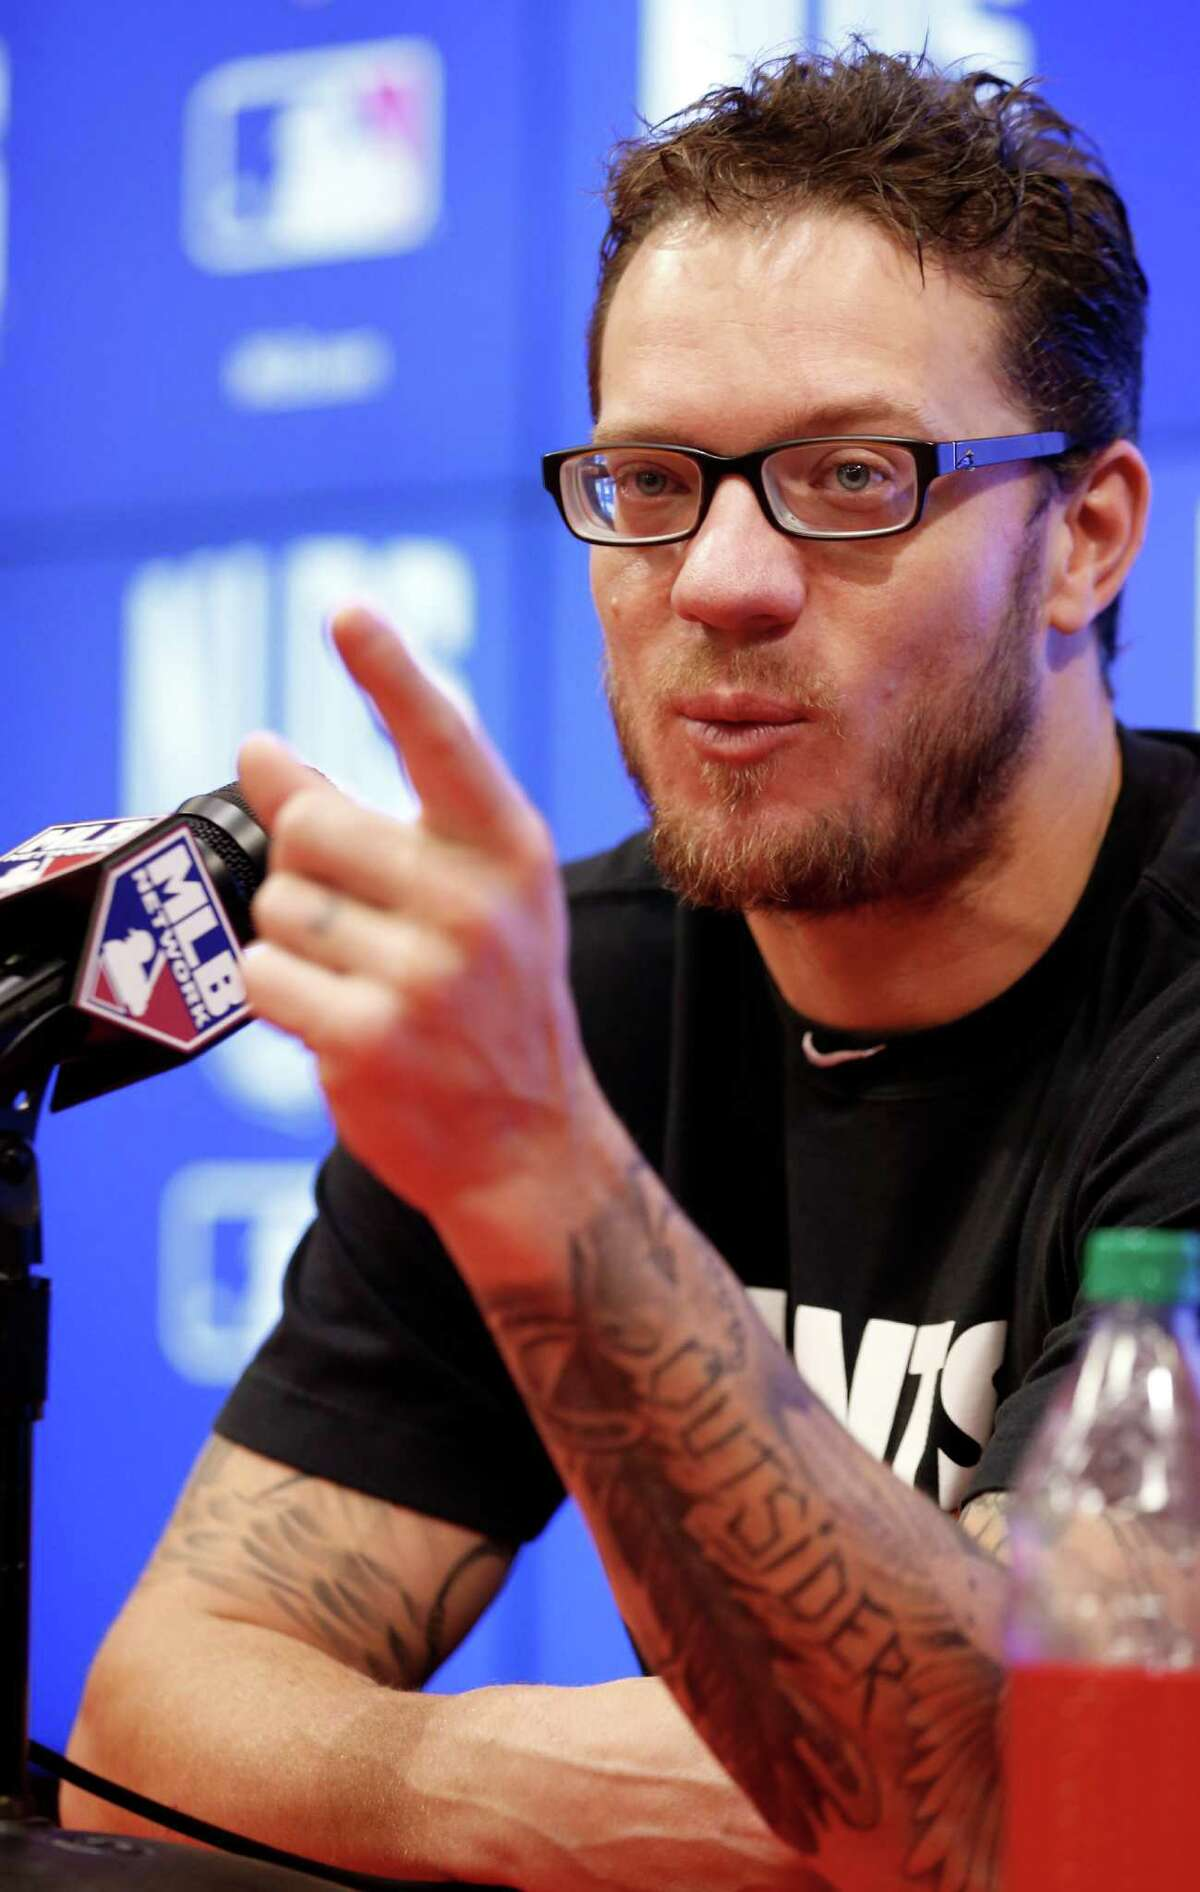 San Francisco Giants starting pitcher Jake Peavy speaks during a media availability before an MLB baseball workout at Nationals Park, Thursday, Oct. 2, 2014, in Washington. The San Francisco Giants will play the Washington Nationals in the NL Division Series starting Friday. (AP Photo/Alex Brandon)